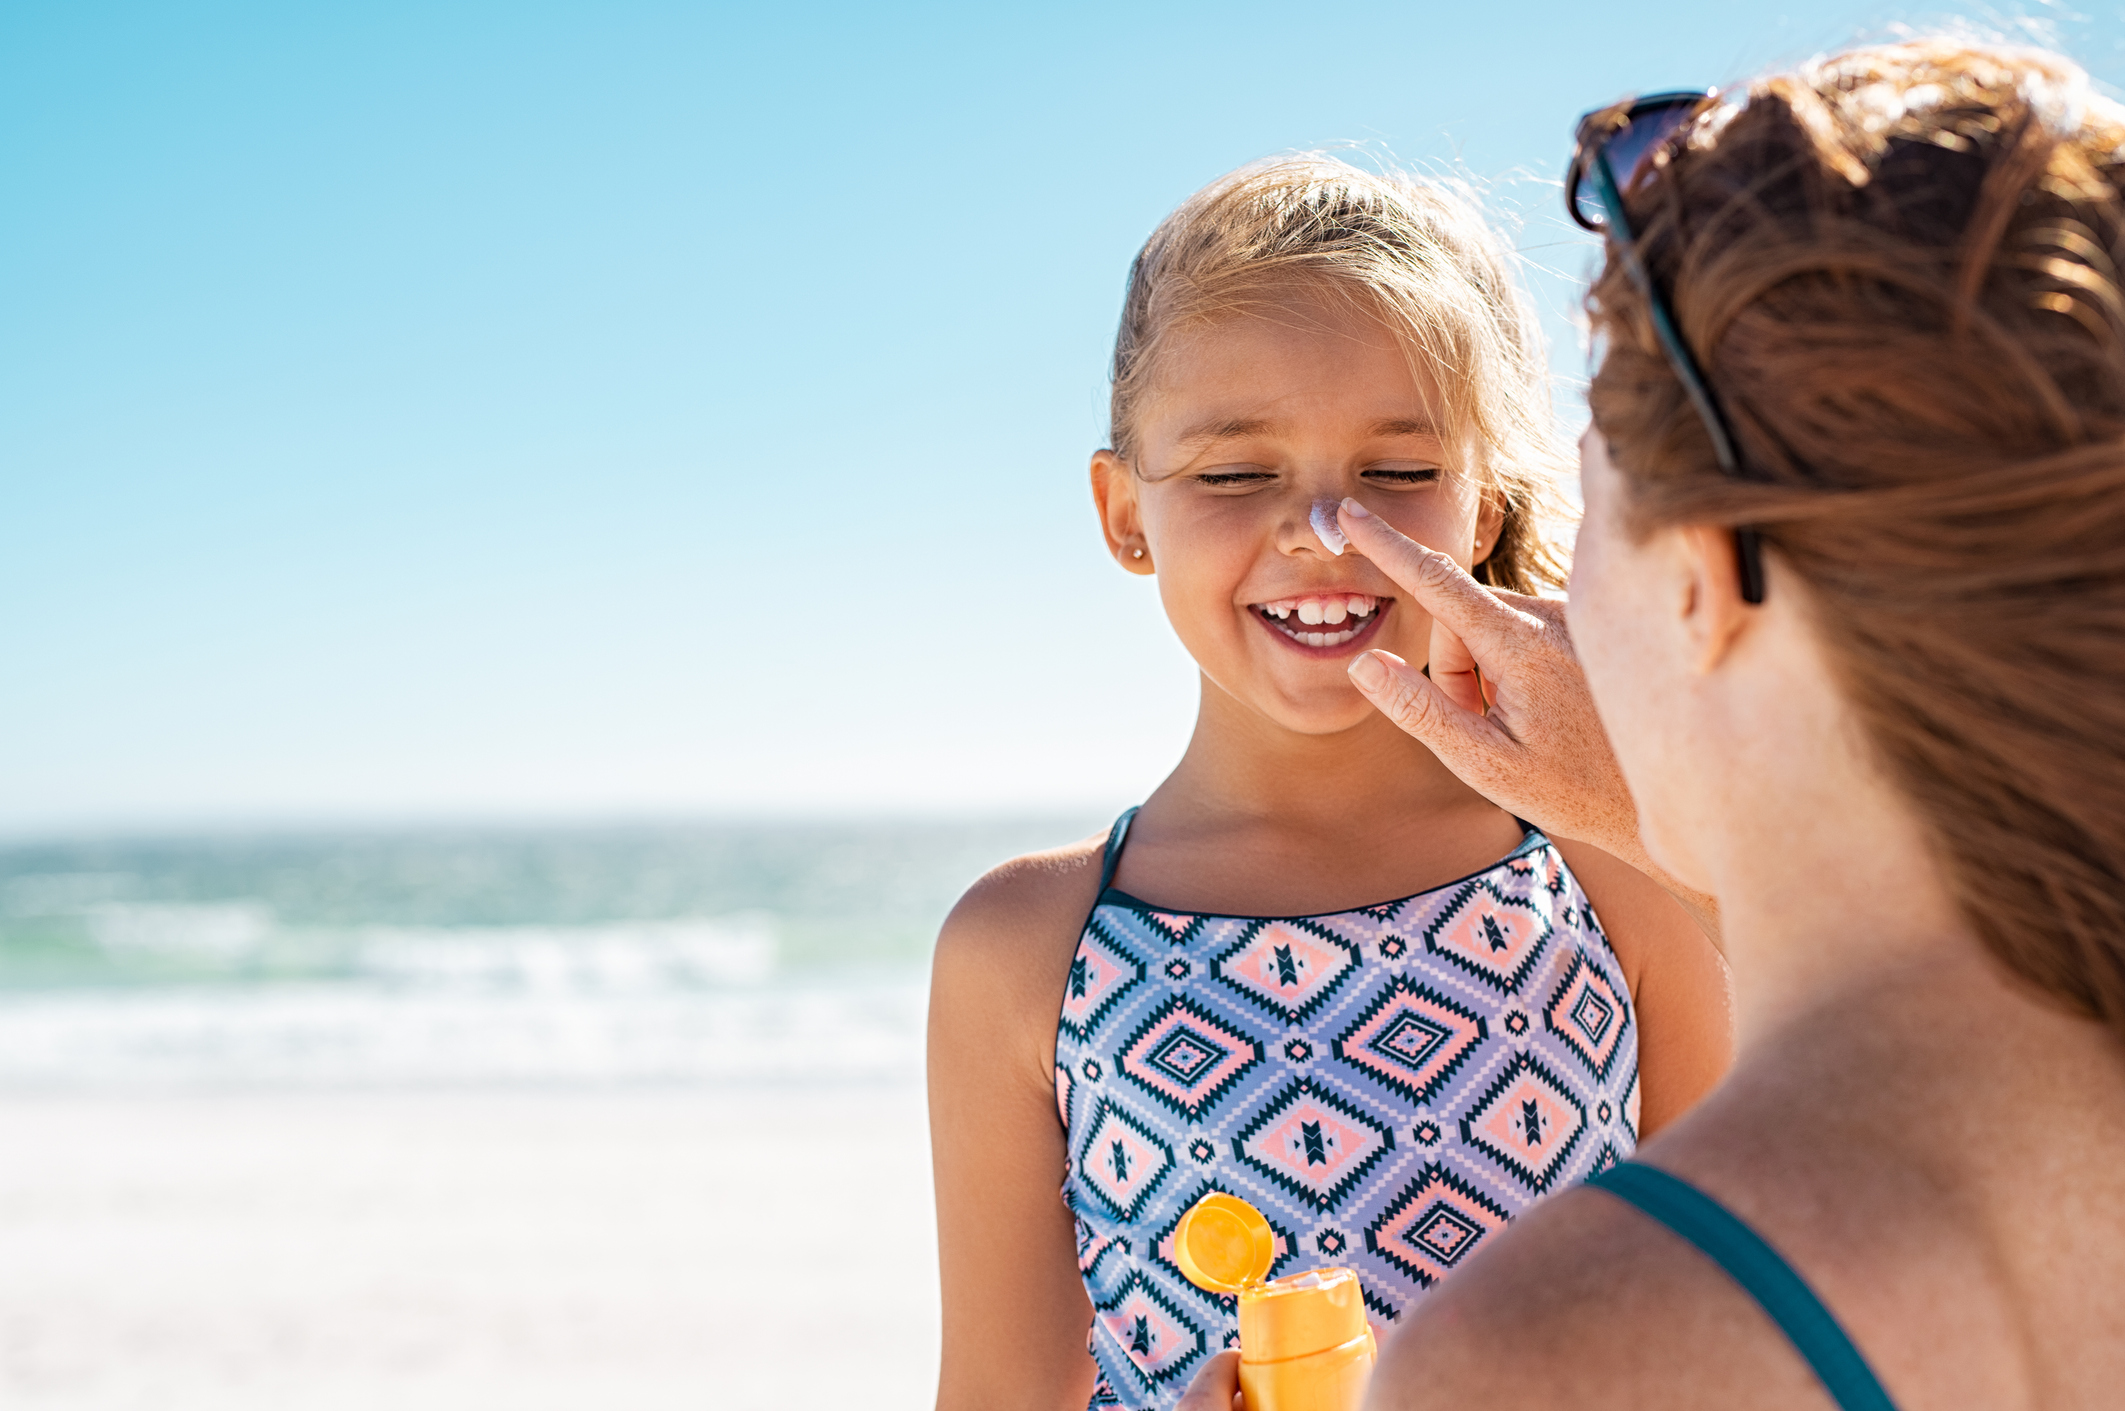 mother applying suntan lotion to daughter's face to stay safe in heat